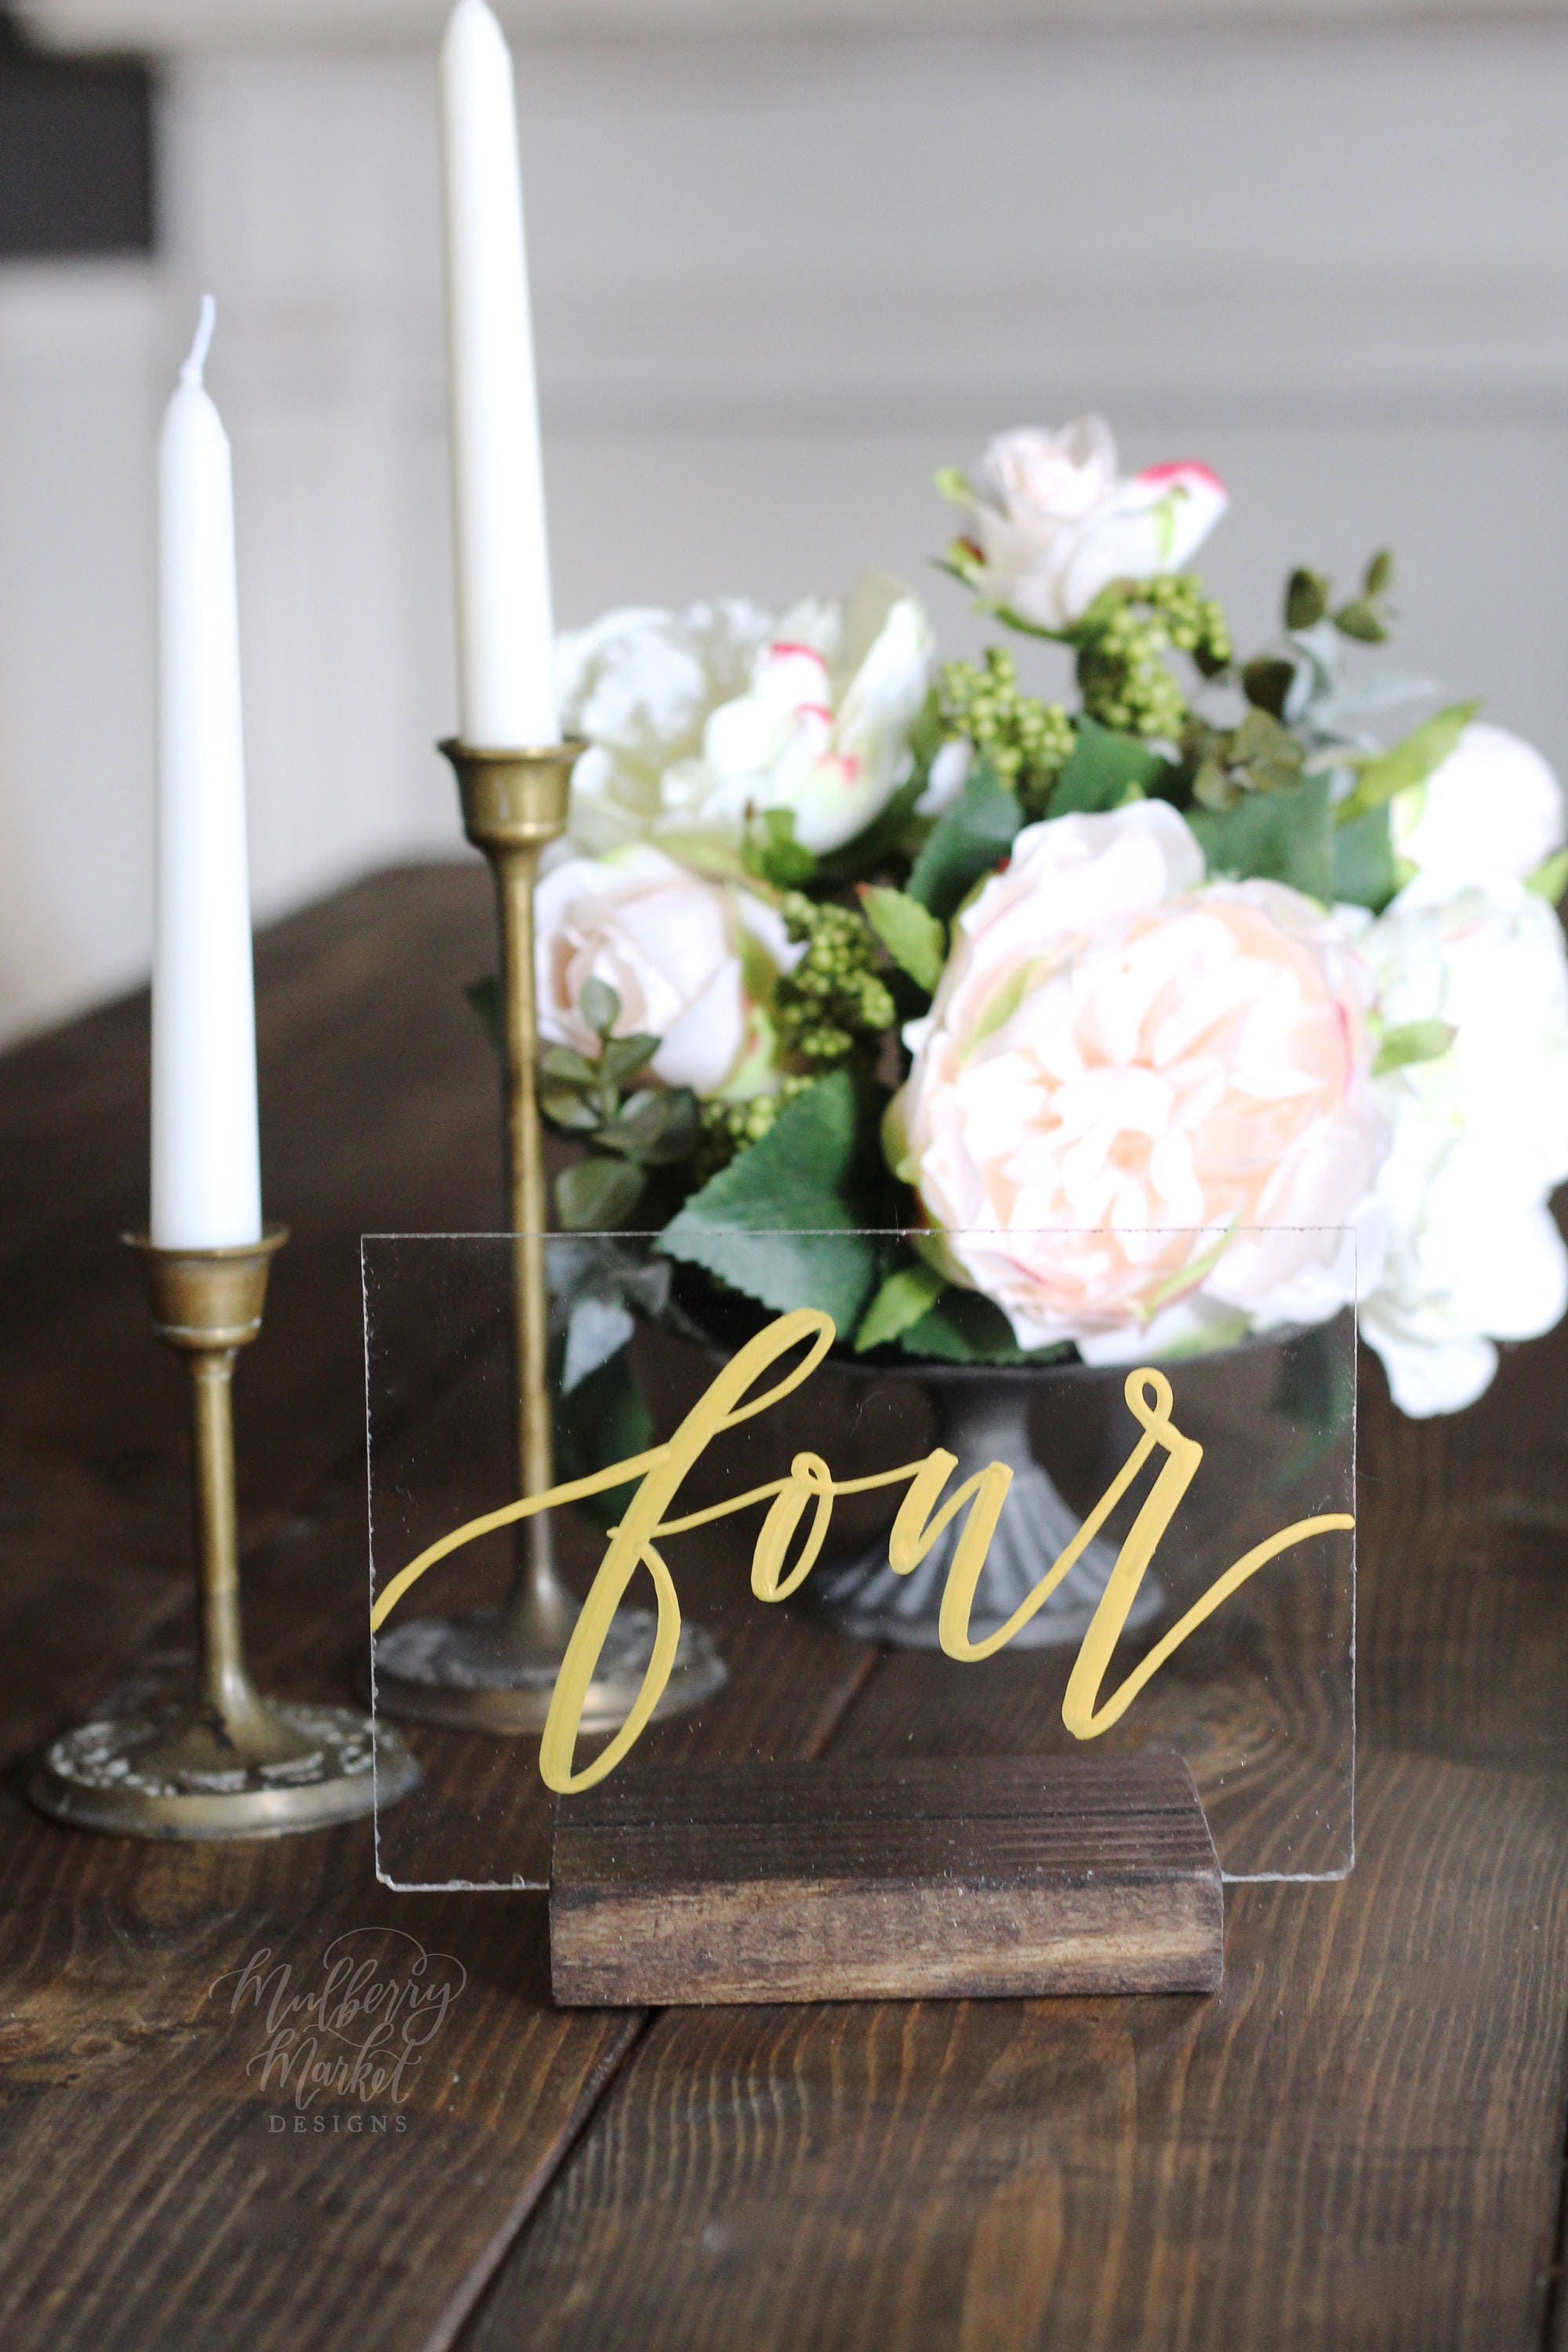 NEW Acrylic Wedding Table Numbers Gold Calligraphy Spanish